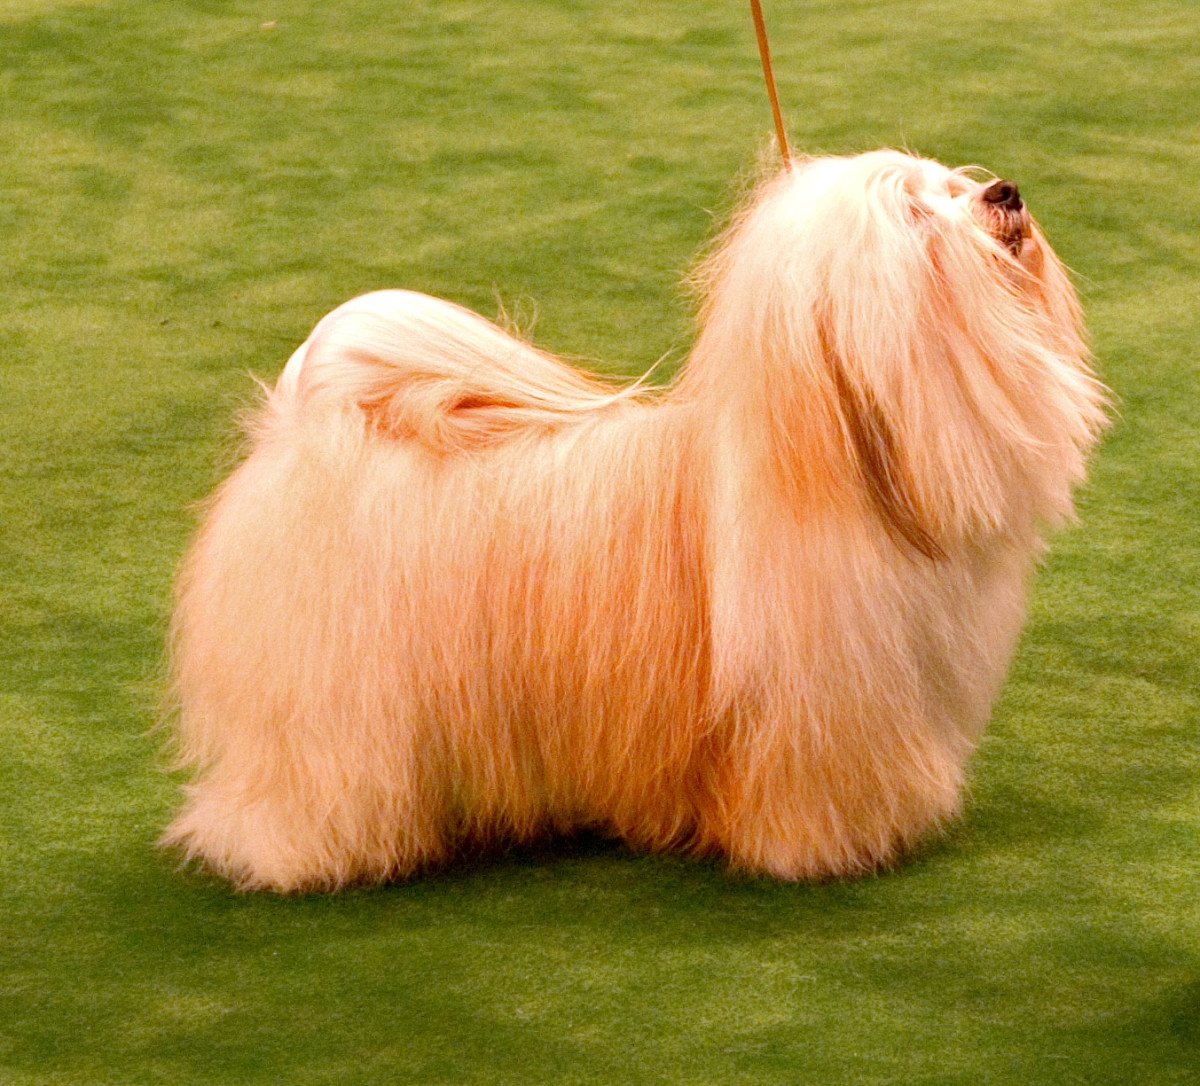 A Havanese show dog, with its fur left untrimmed, long, and brushed.